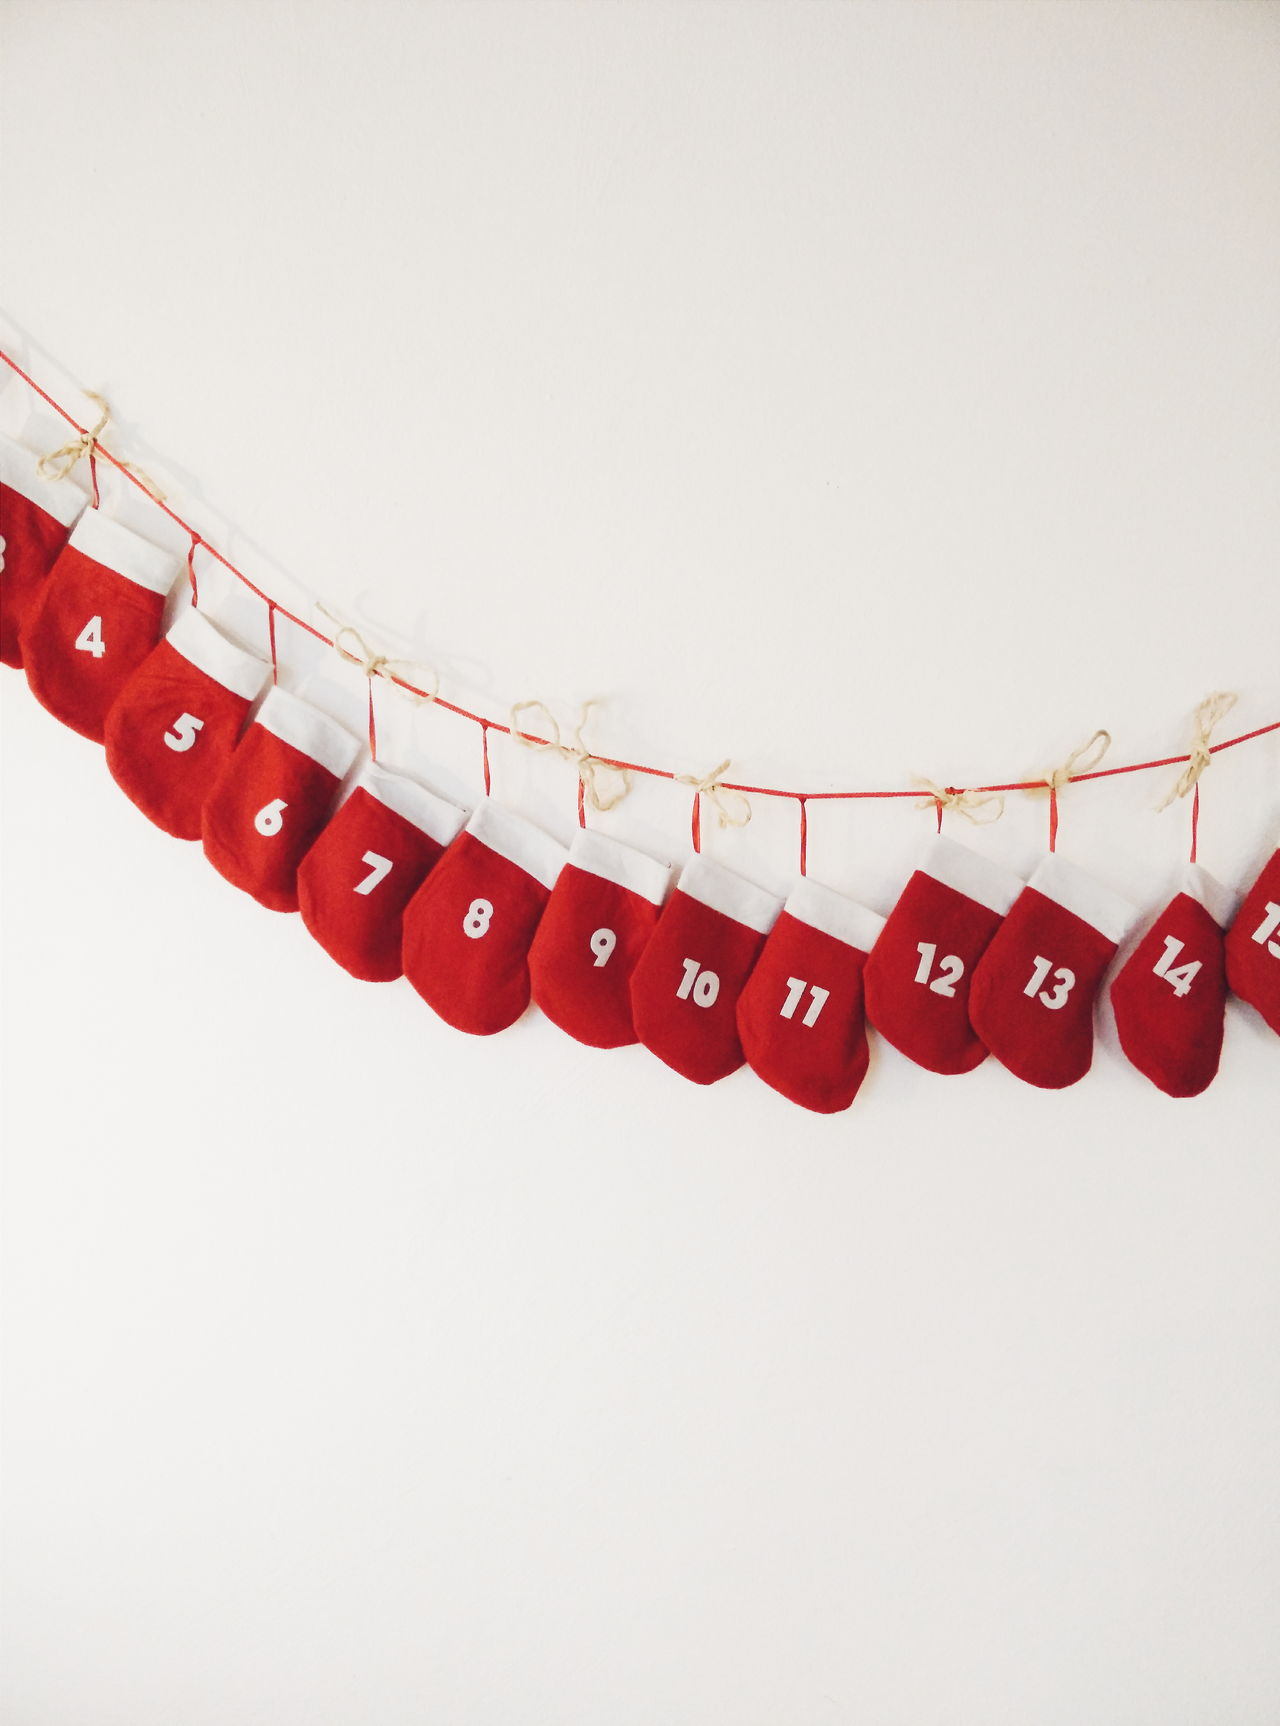 Christmas stockings in row with numbers